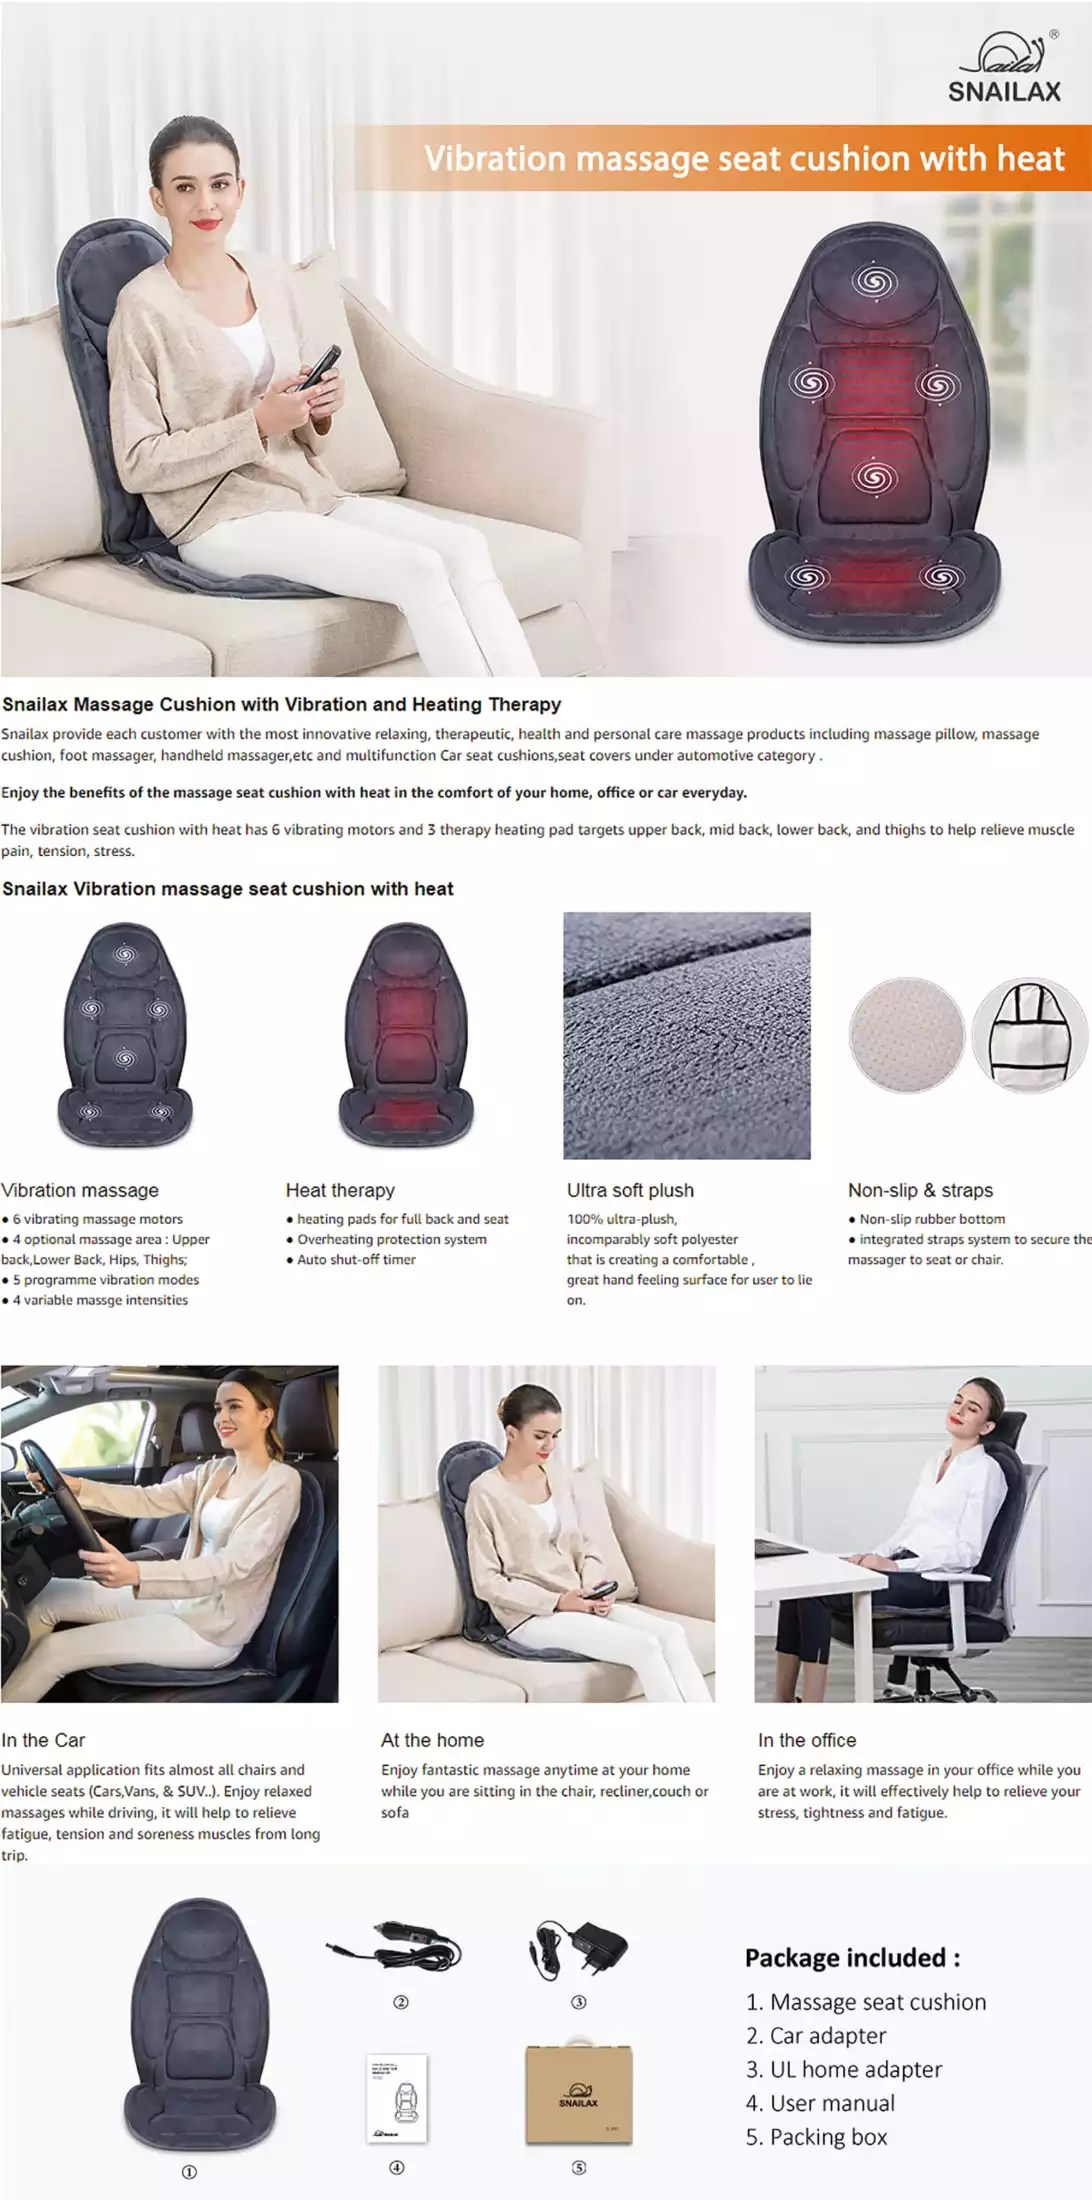 snailax sl 262p light weight vibration massager chair cushion with heat function for home office and car use